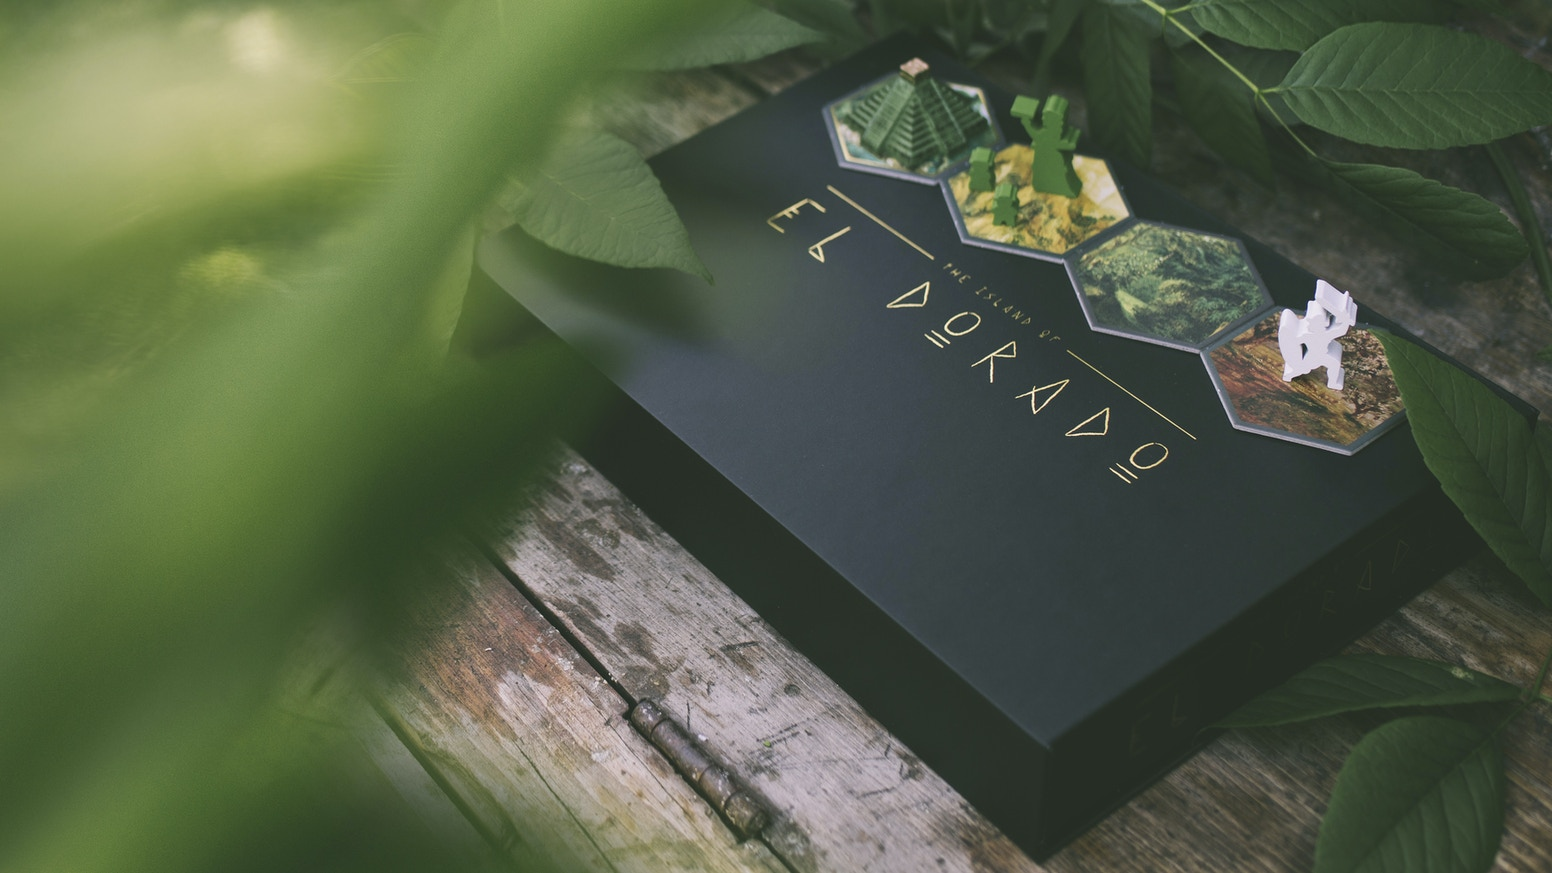 A strategic board game. Explore the island, gather its resources, and cross swords as you race to control powerful shrines.